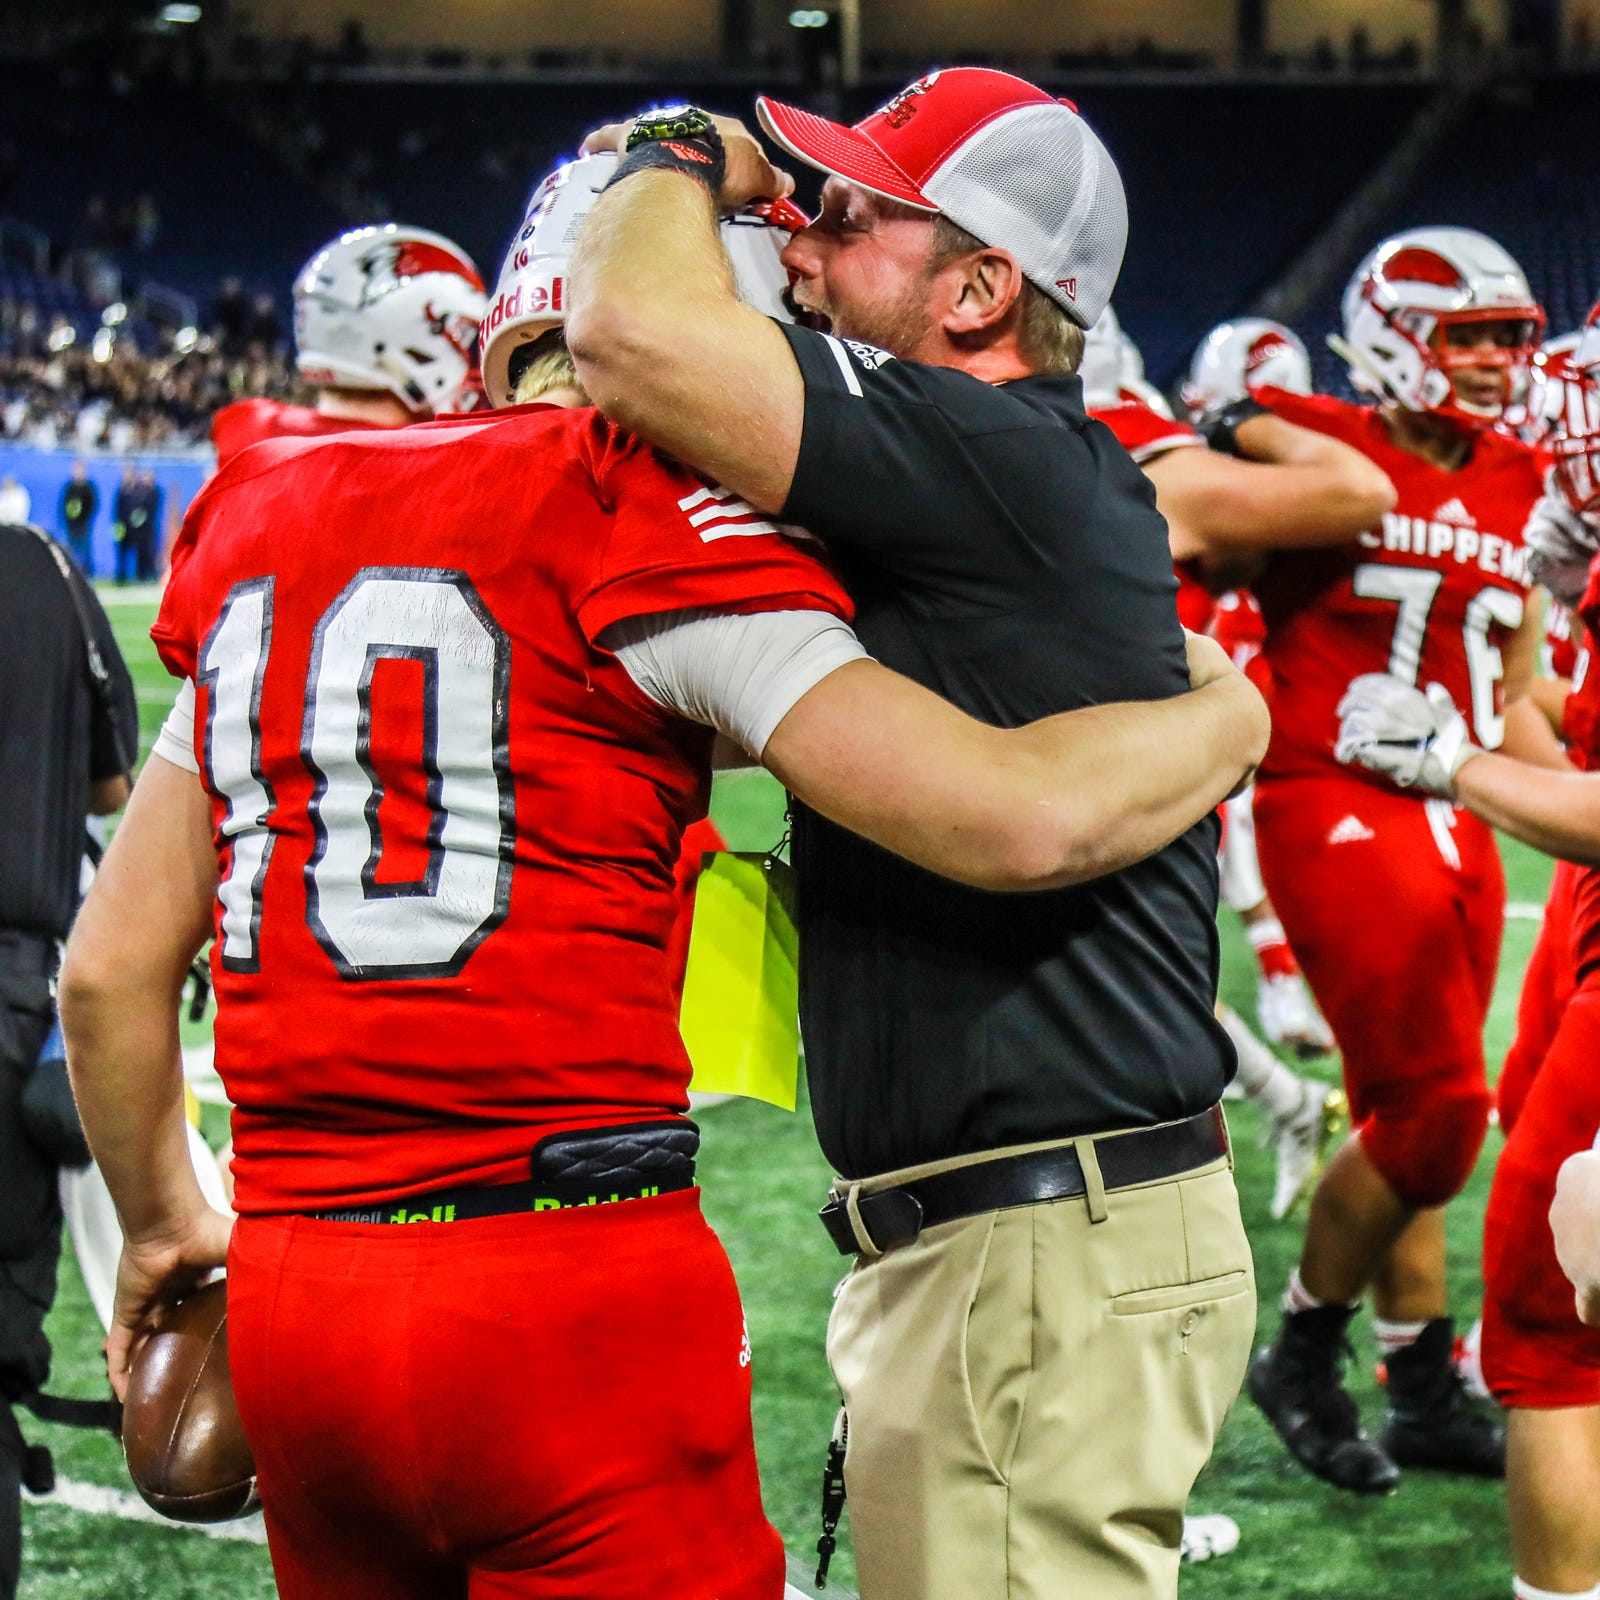 Chippewa Valley's Scott Merchant perseveres, earns coach of year honors